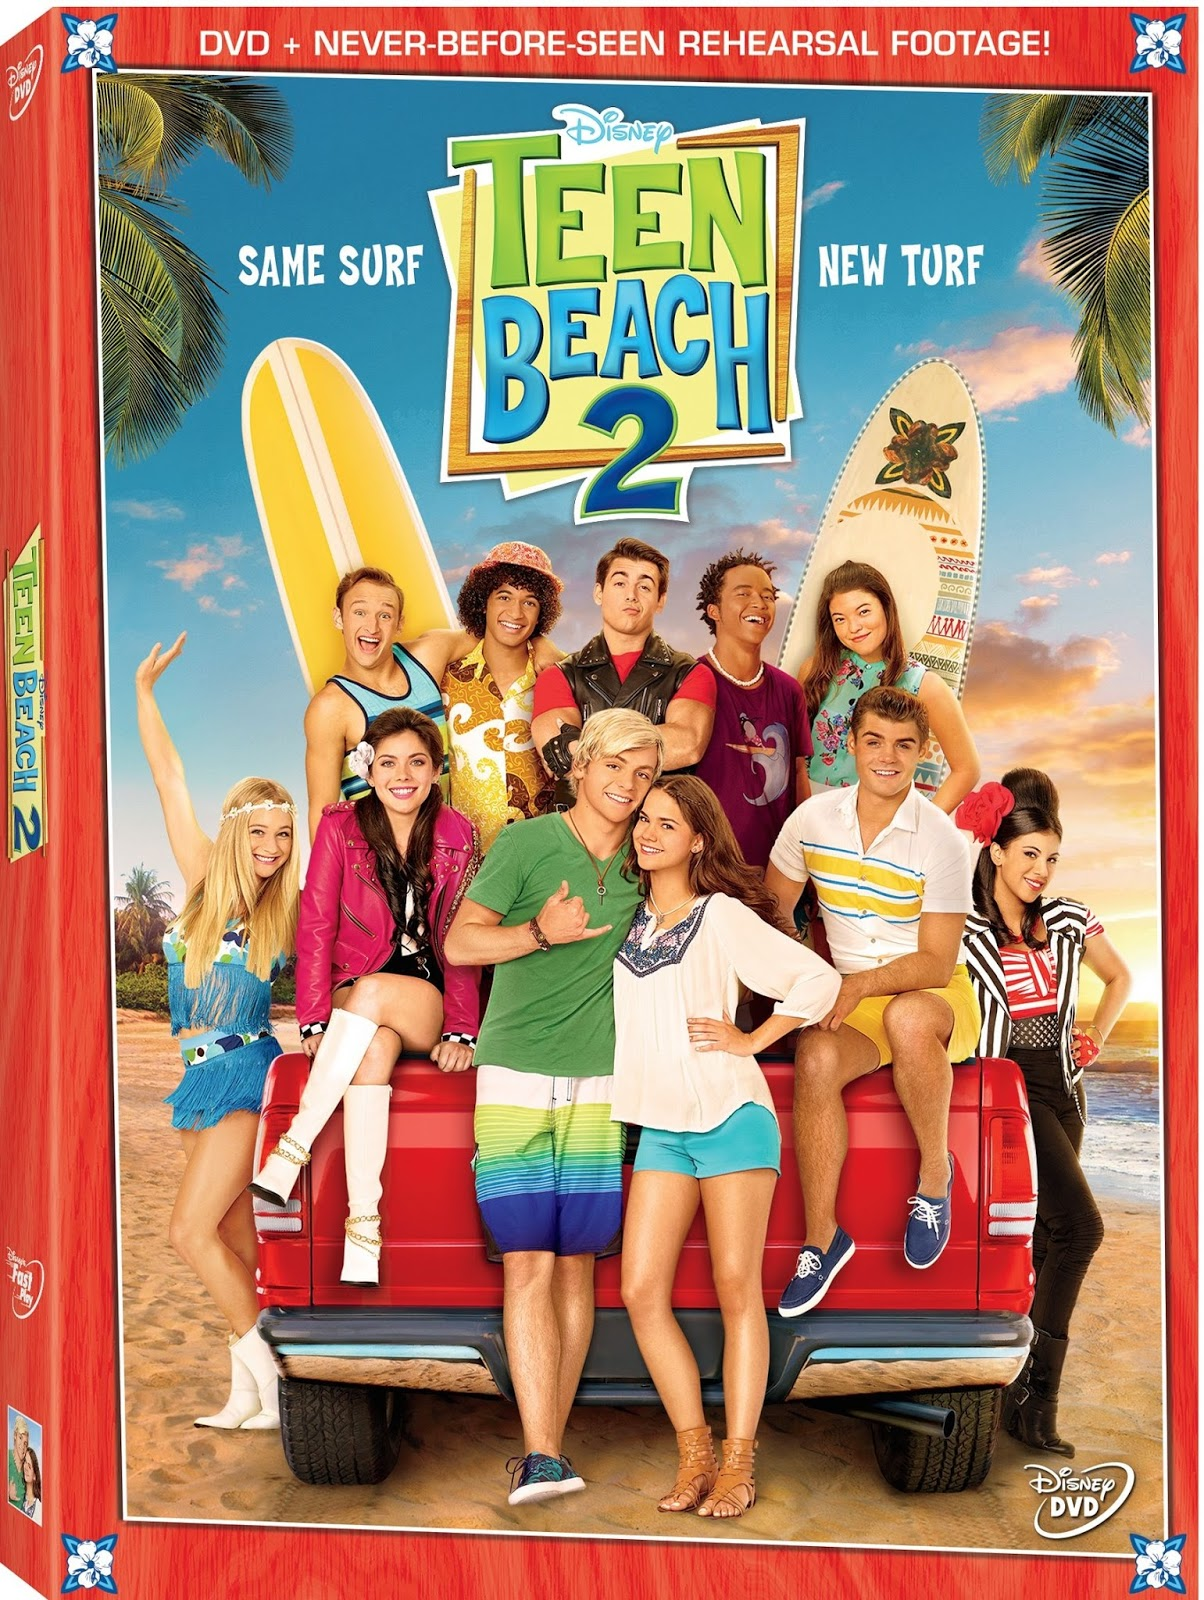 Teen Beach 2 on DVD